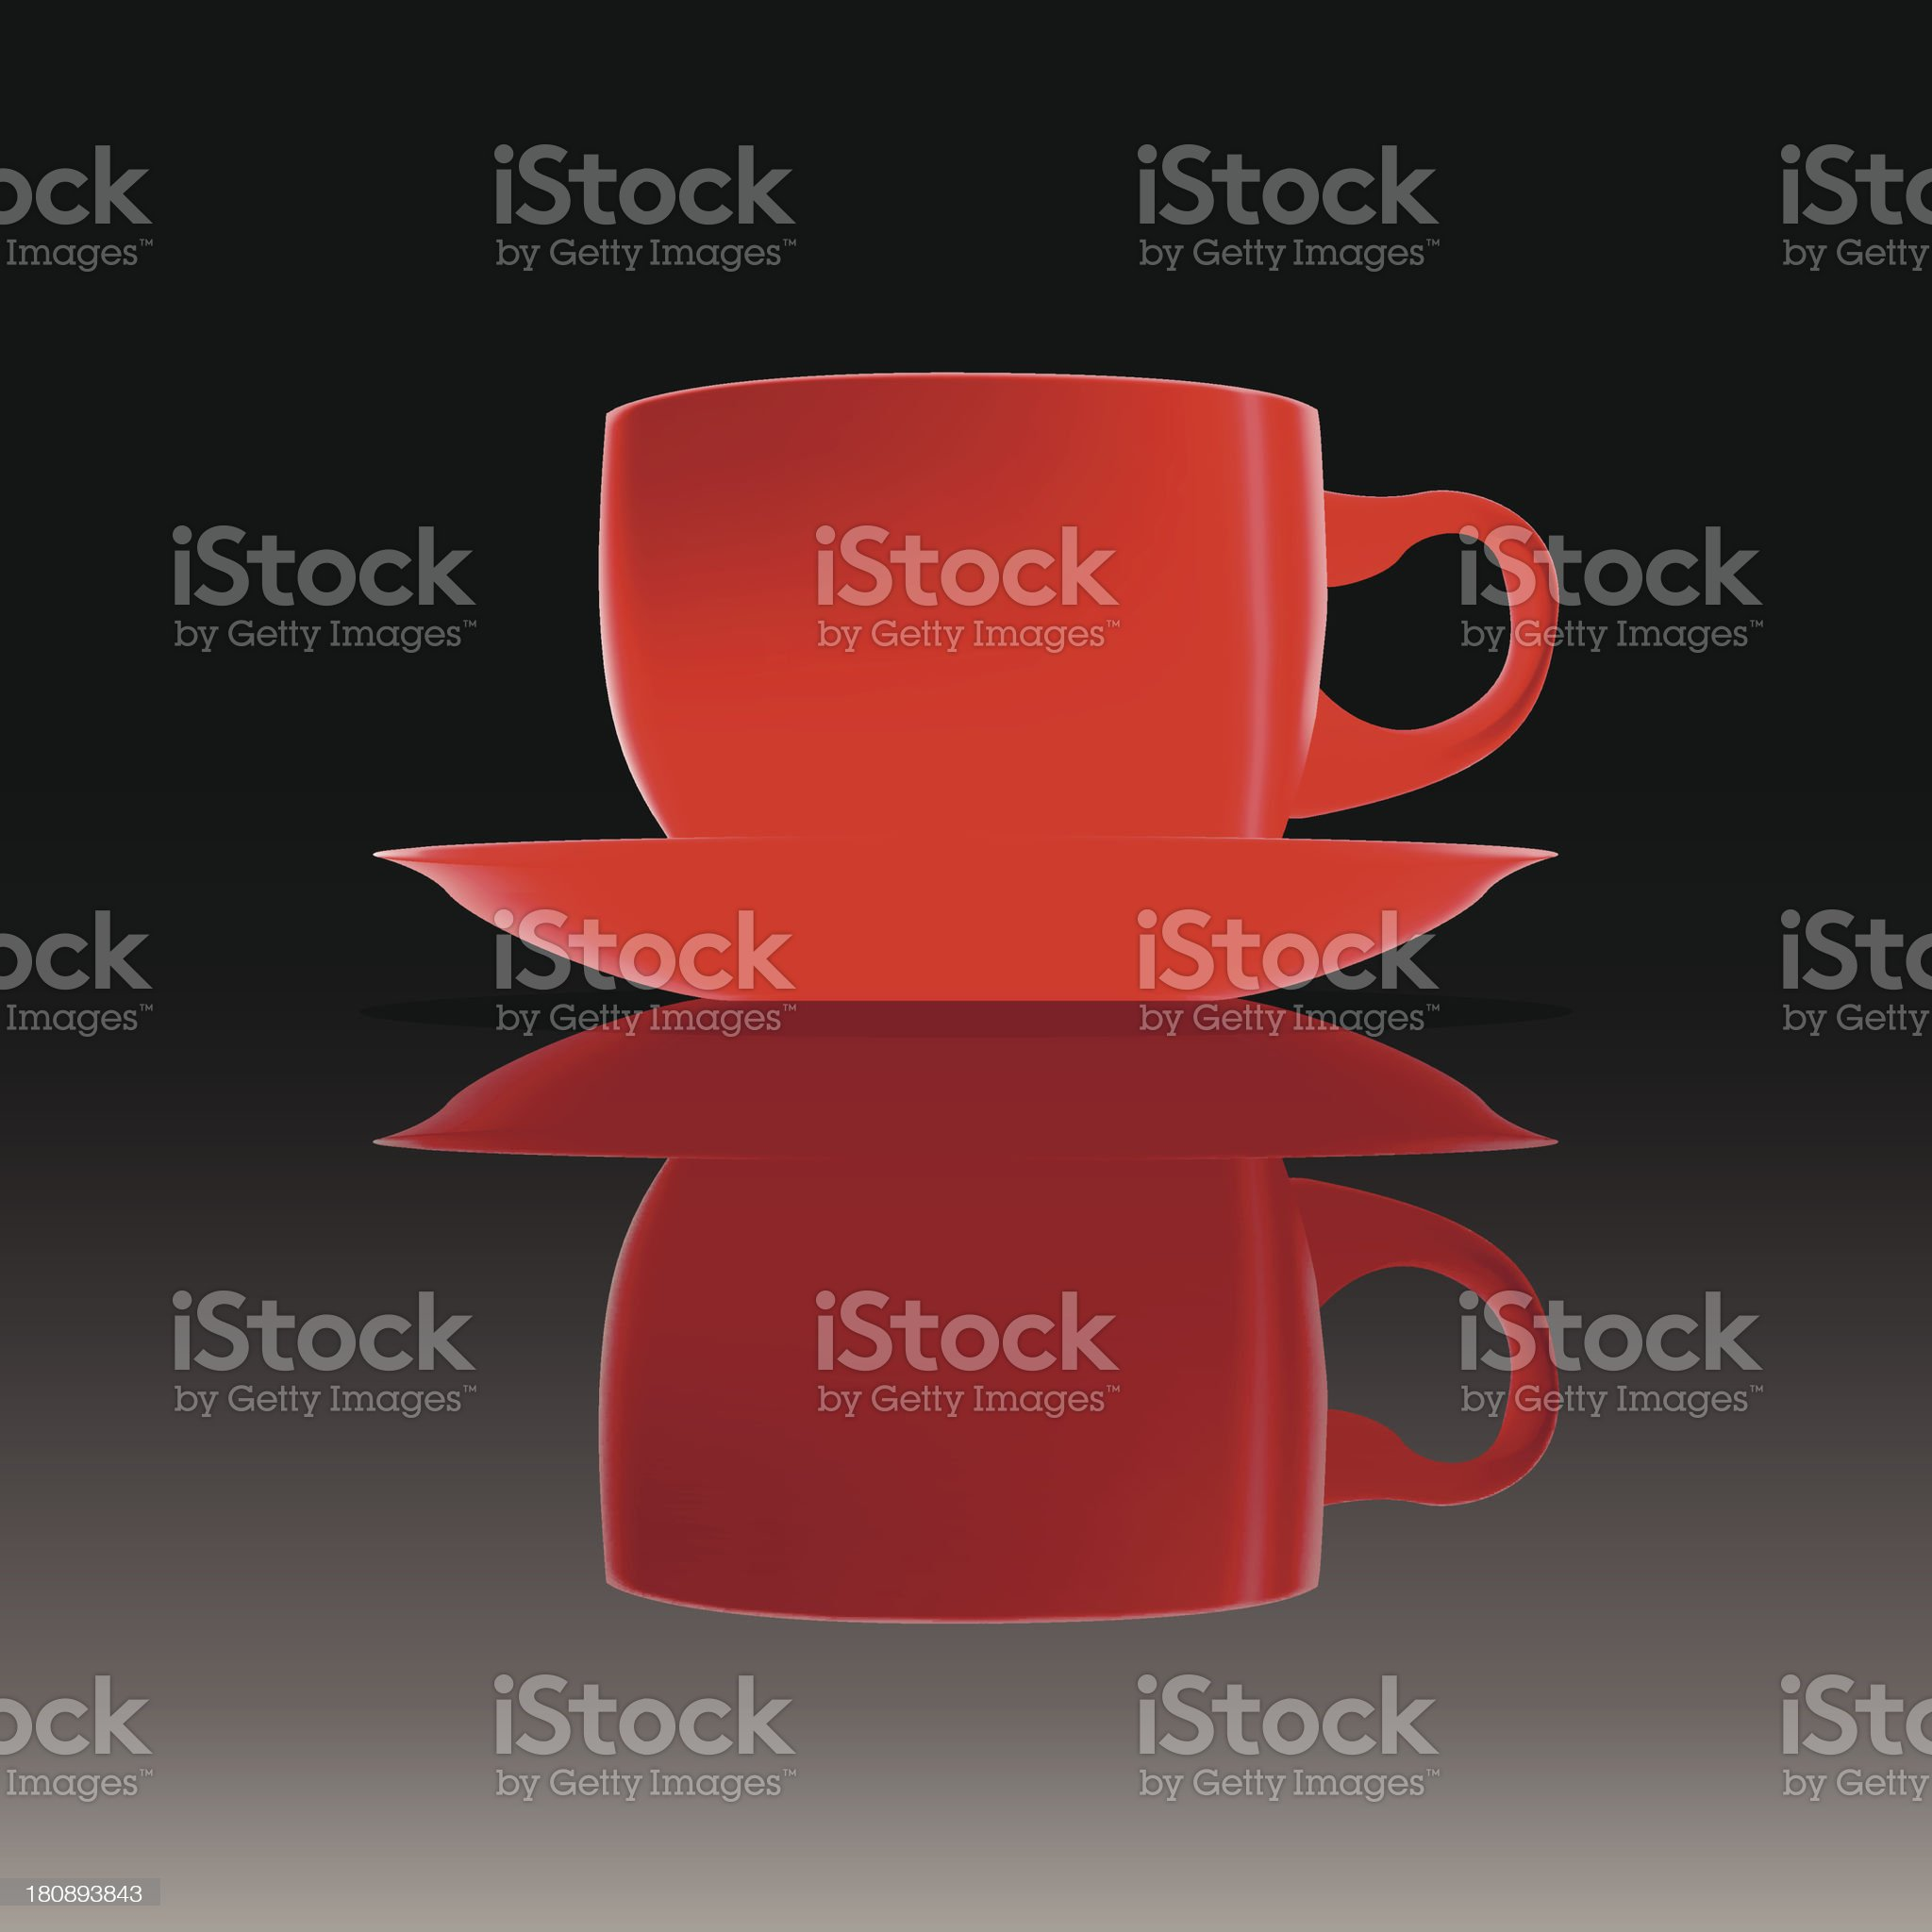 Red cup on a smooth surface royalty-free stock vector art